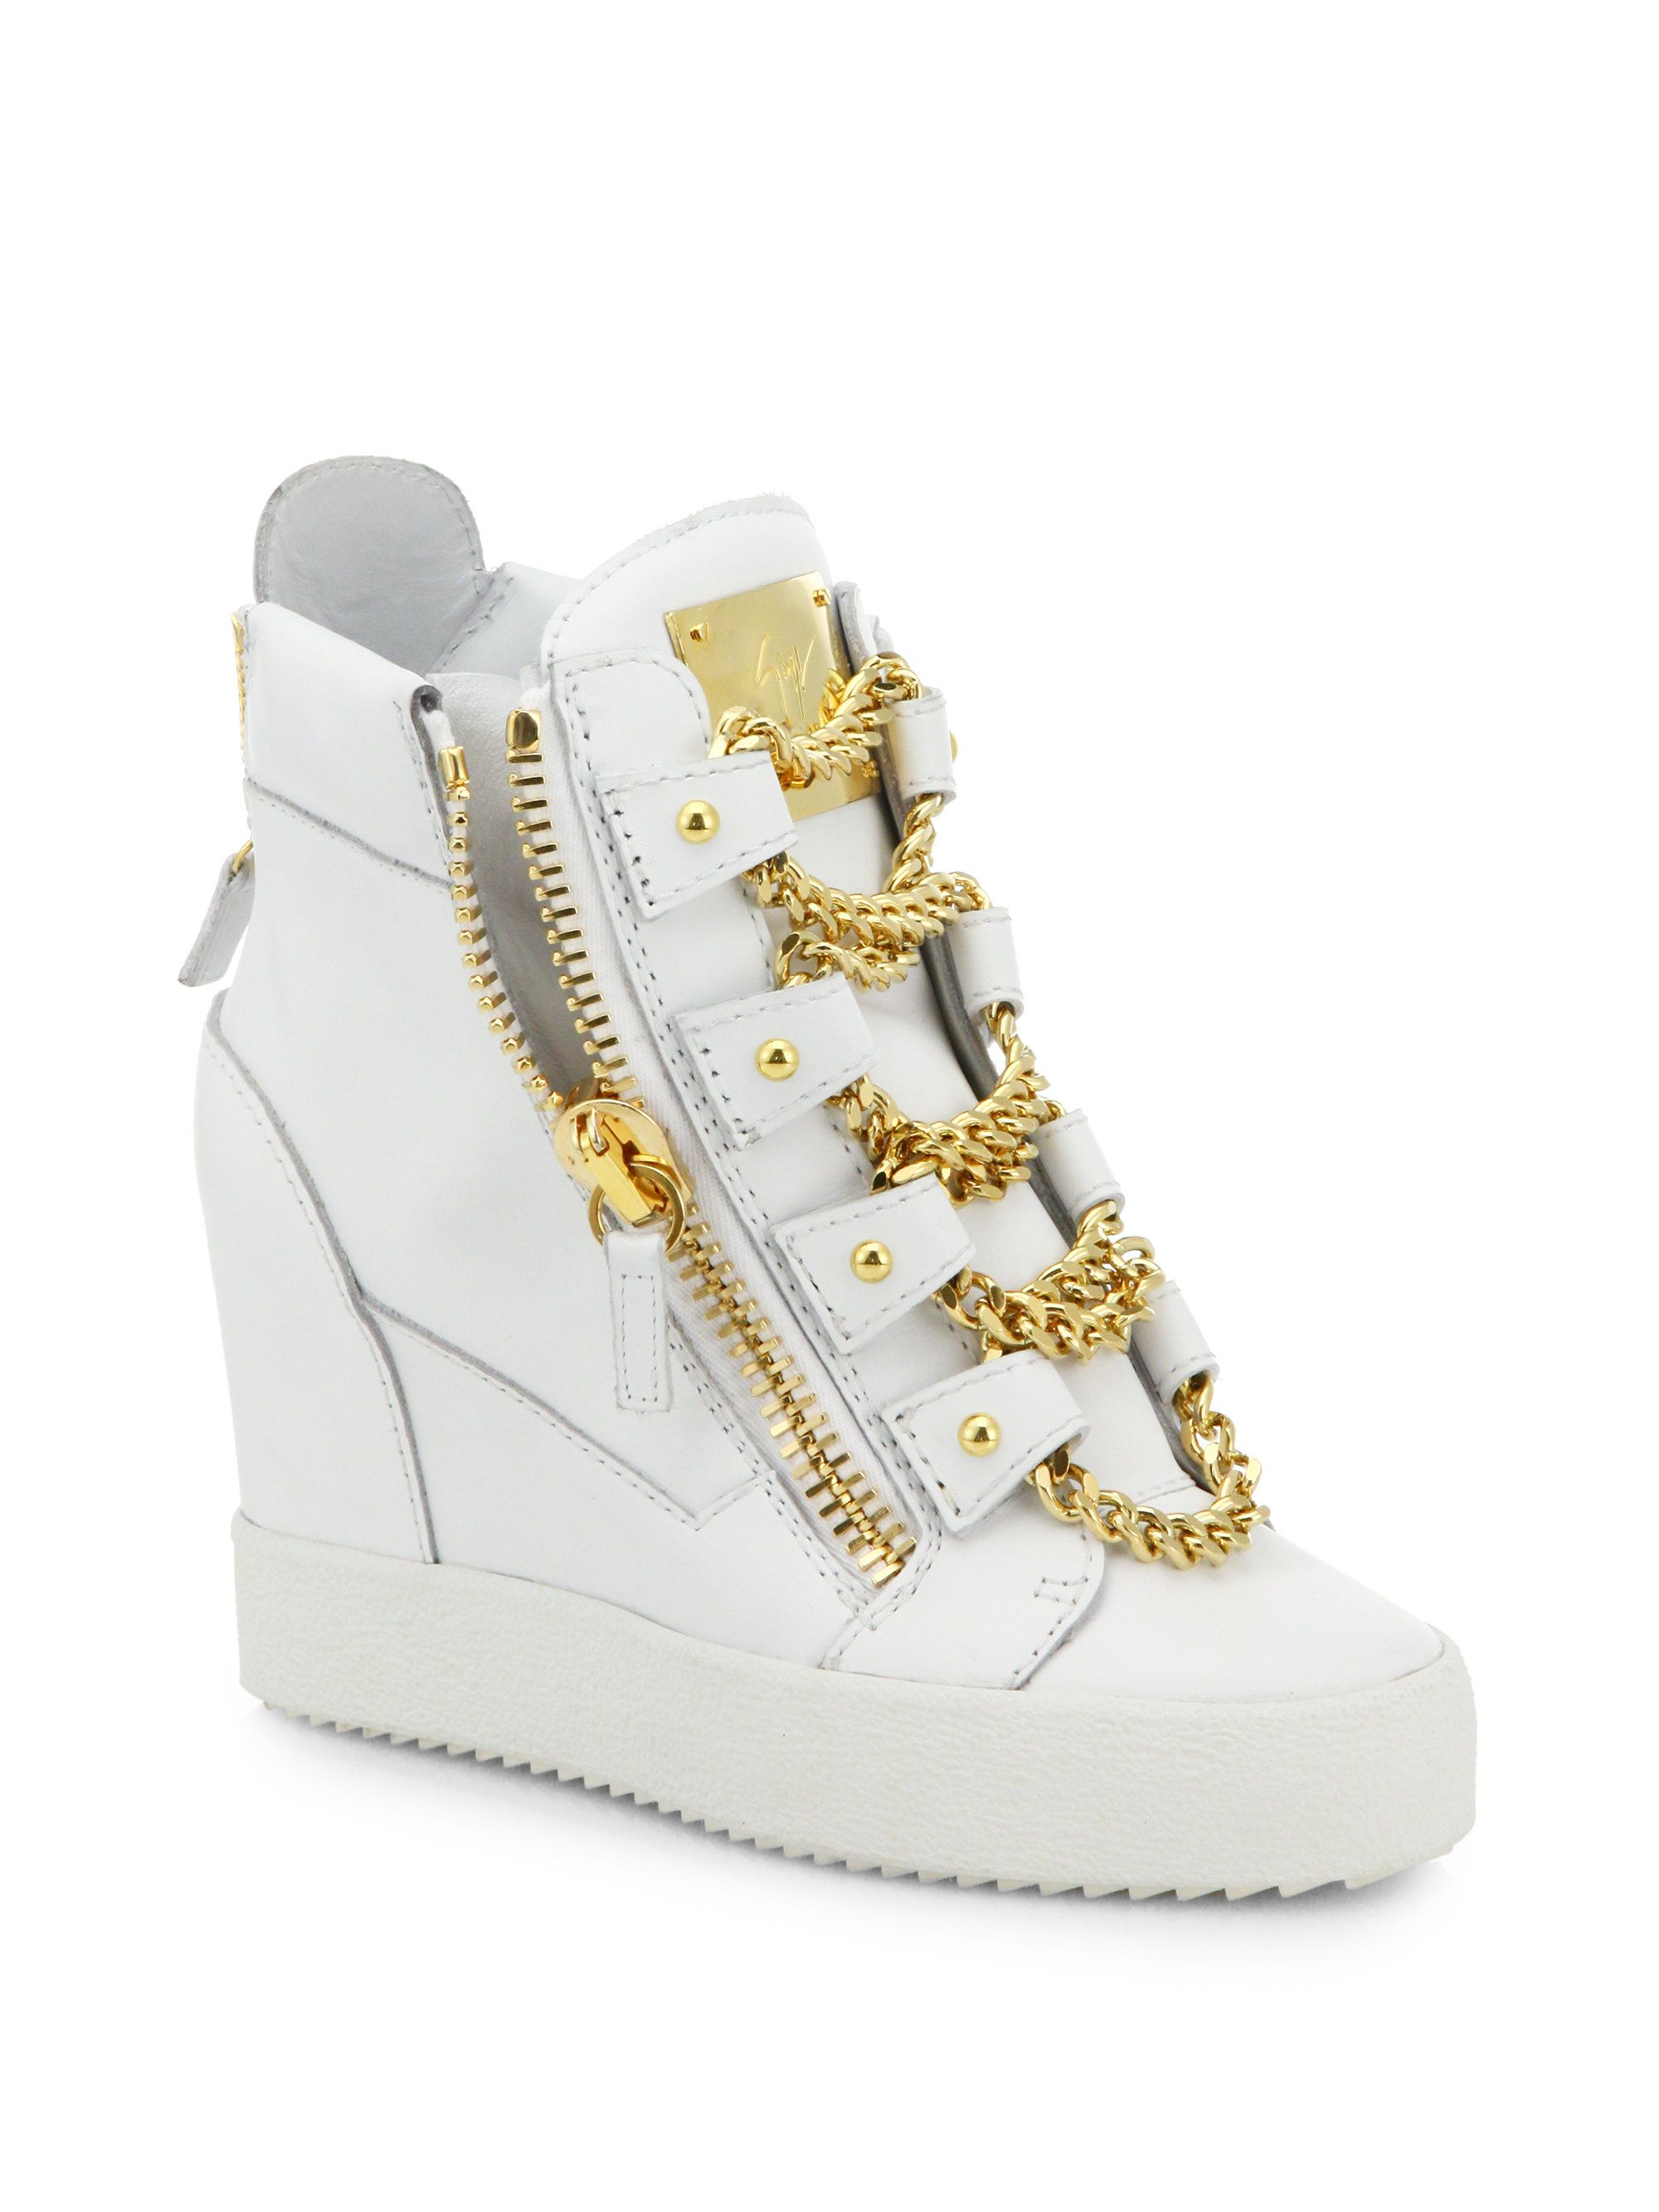 a1b0282c99192 Giuseppe Zanotti White Chains Leather Wedge High-Top Sneakers ...